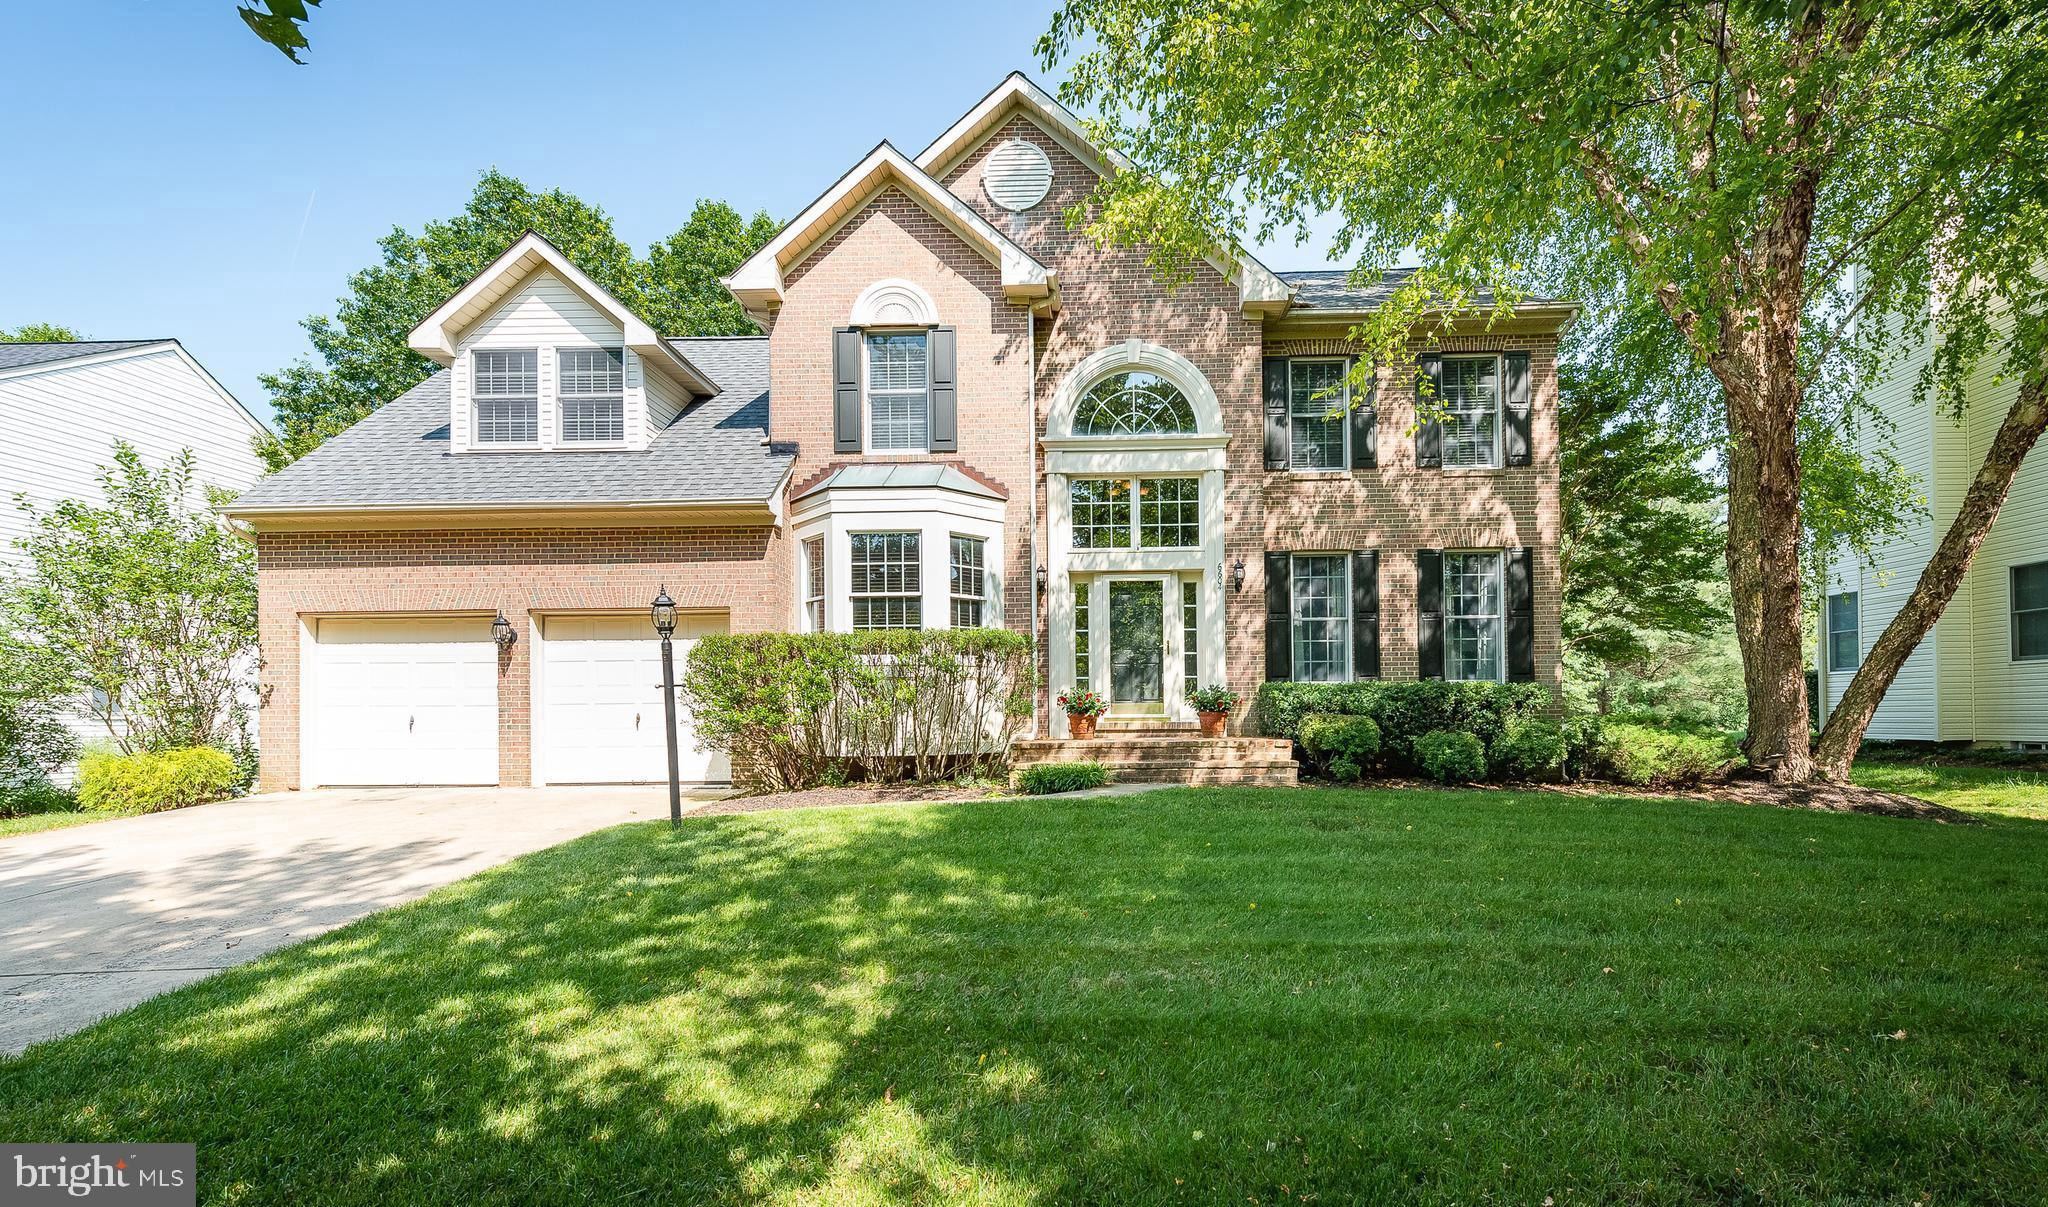 6604 GLEAMING SAND CHASE, COLUMBIA, MD 21044